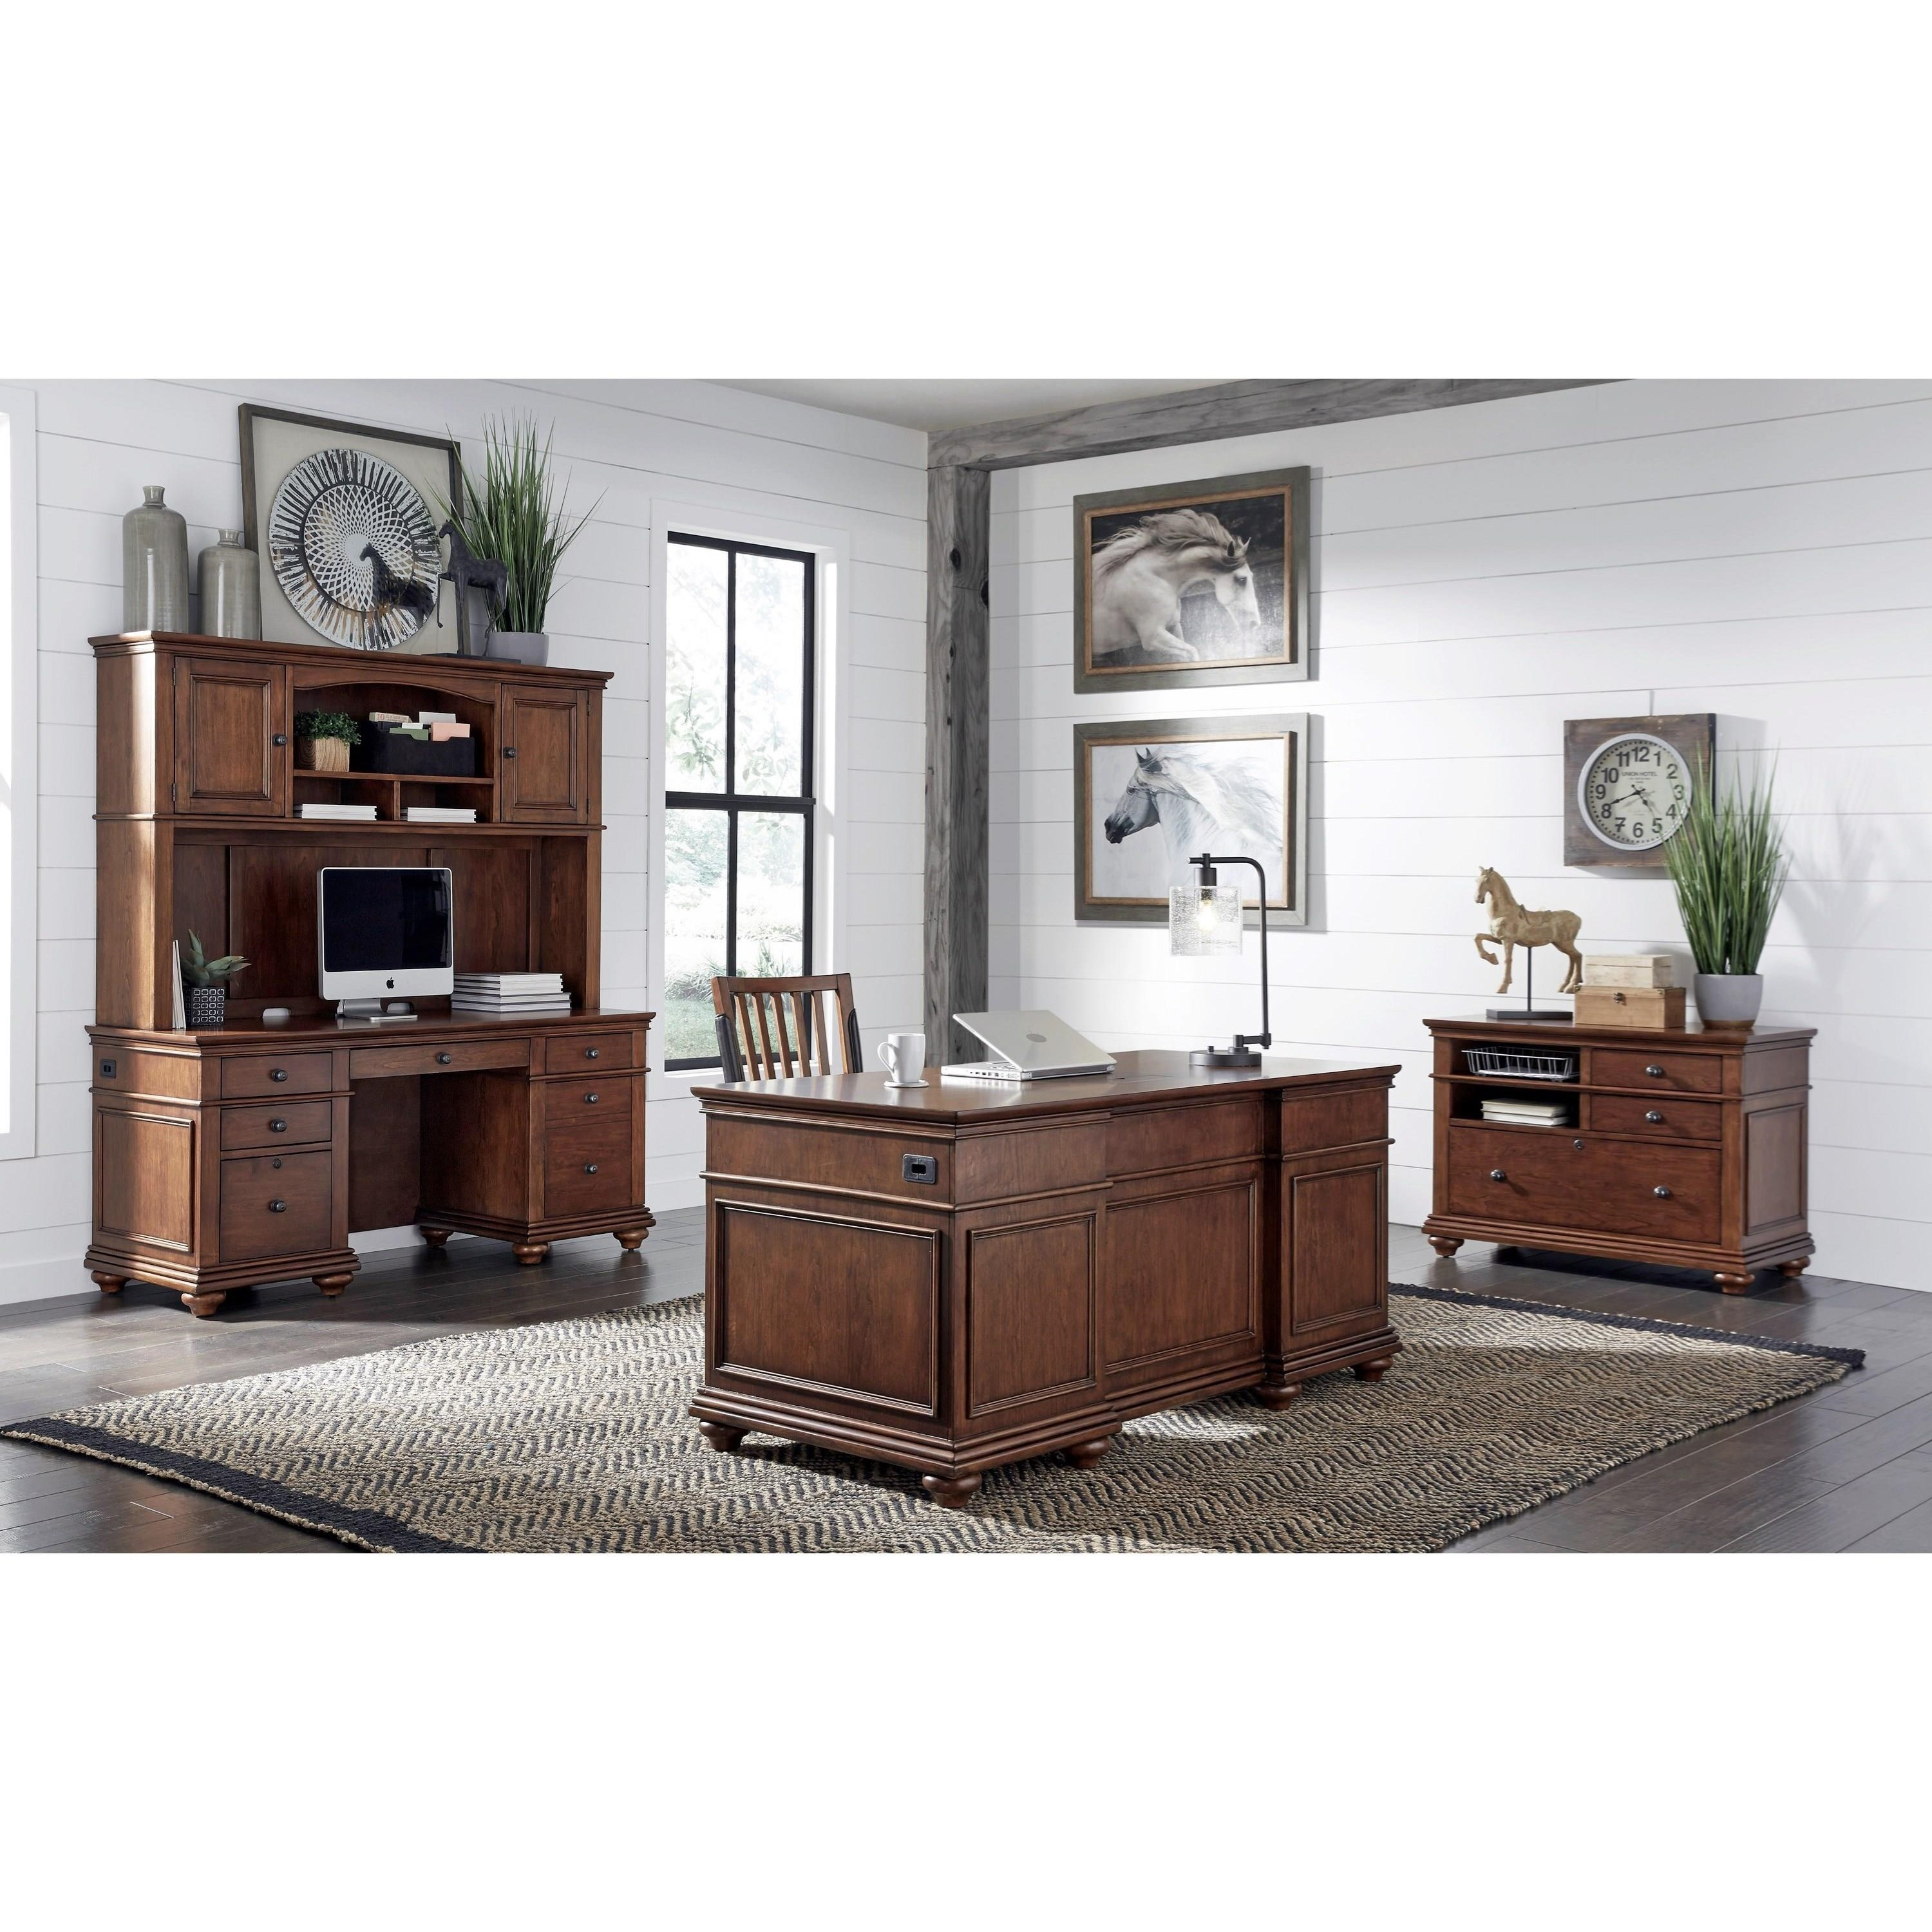 Aspenhome Oxford Executive Desk With Locking File Drawers